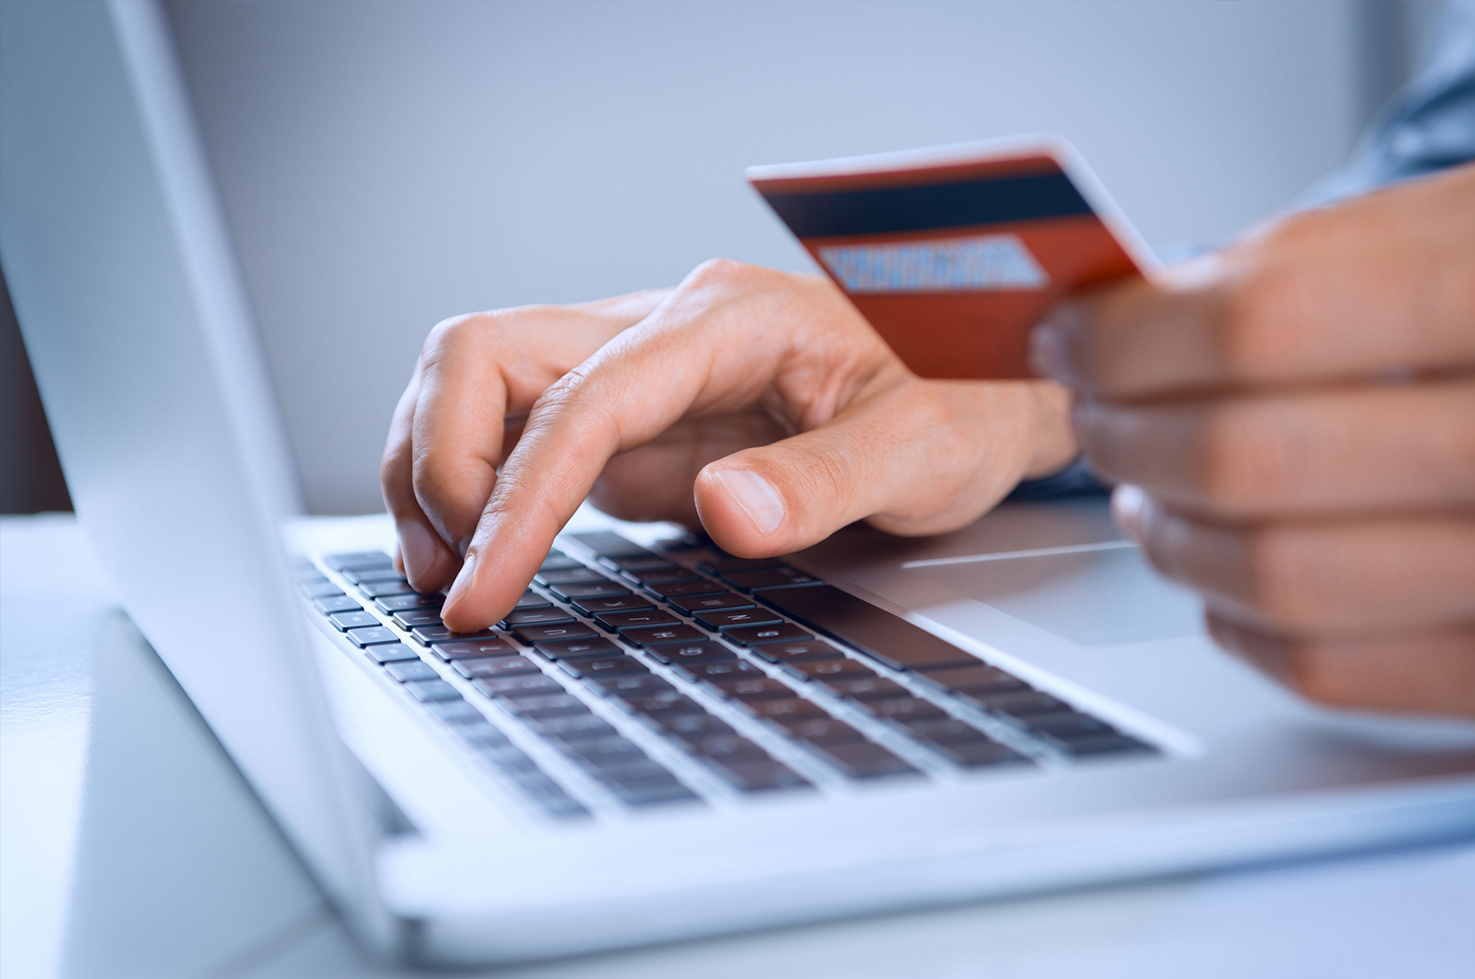 Making online payments on computer.